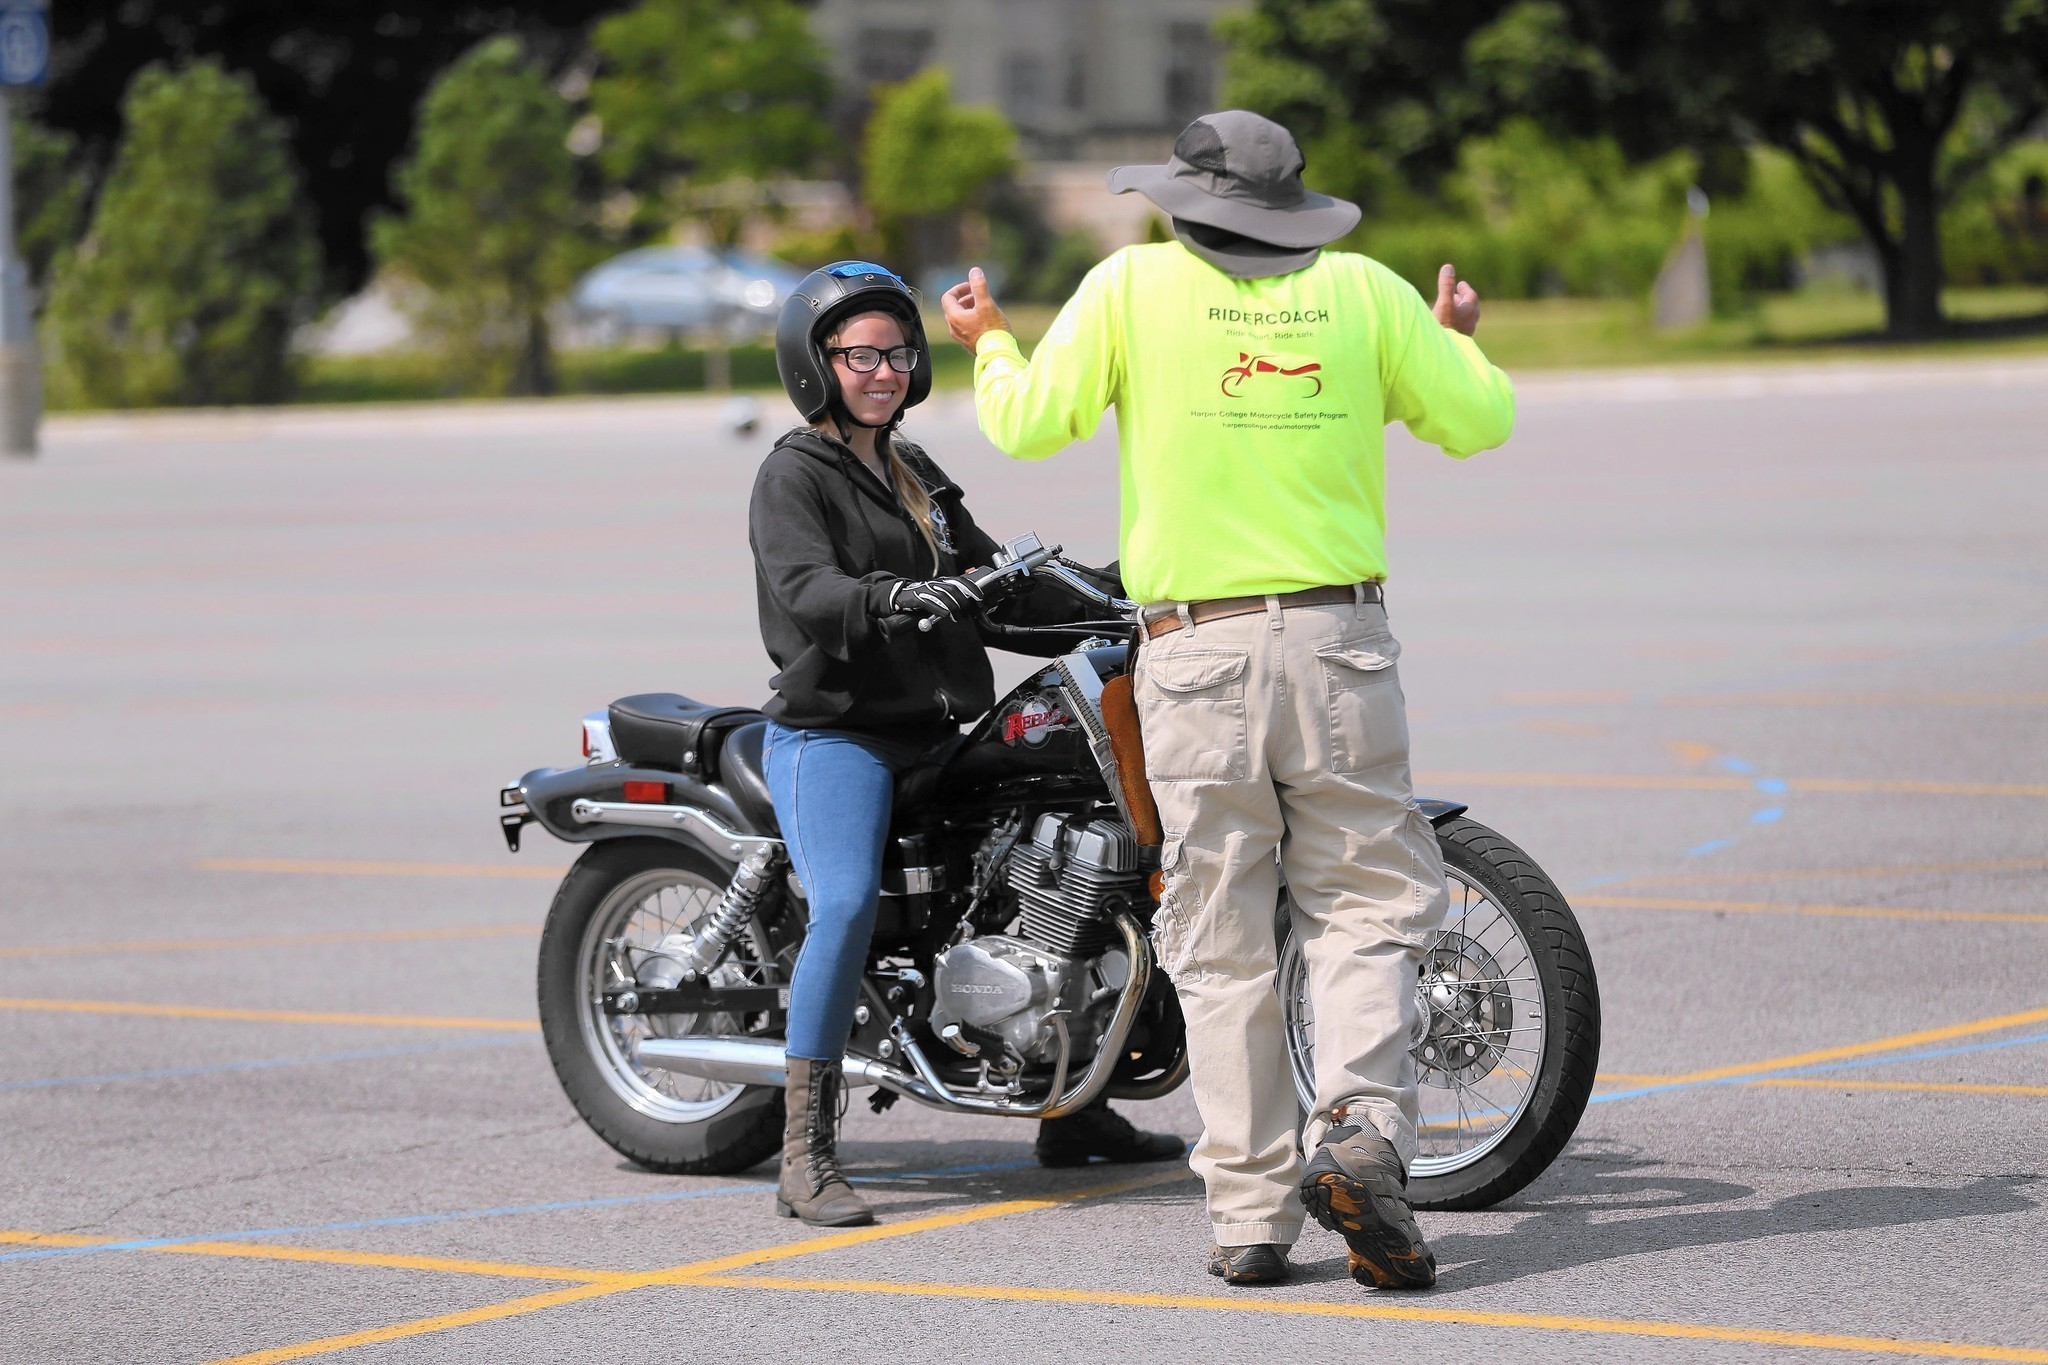 Motorcycle Training Programs In Chicagoland 15 Minute News